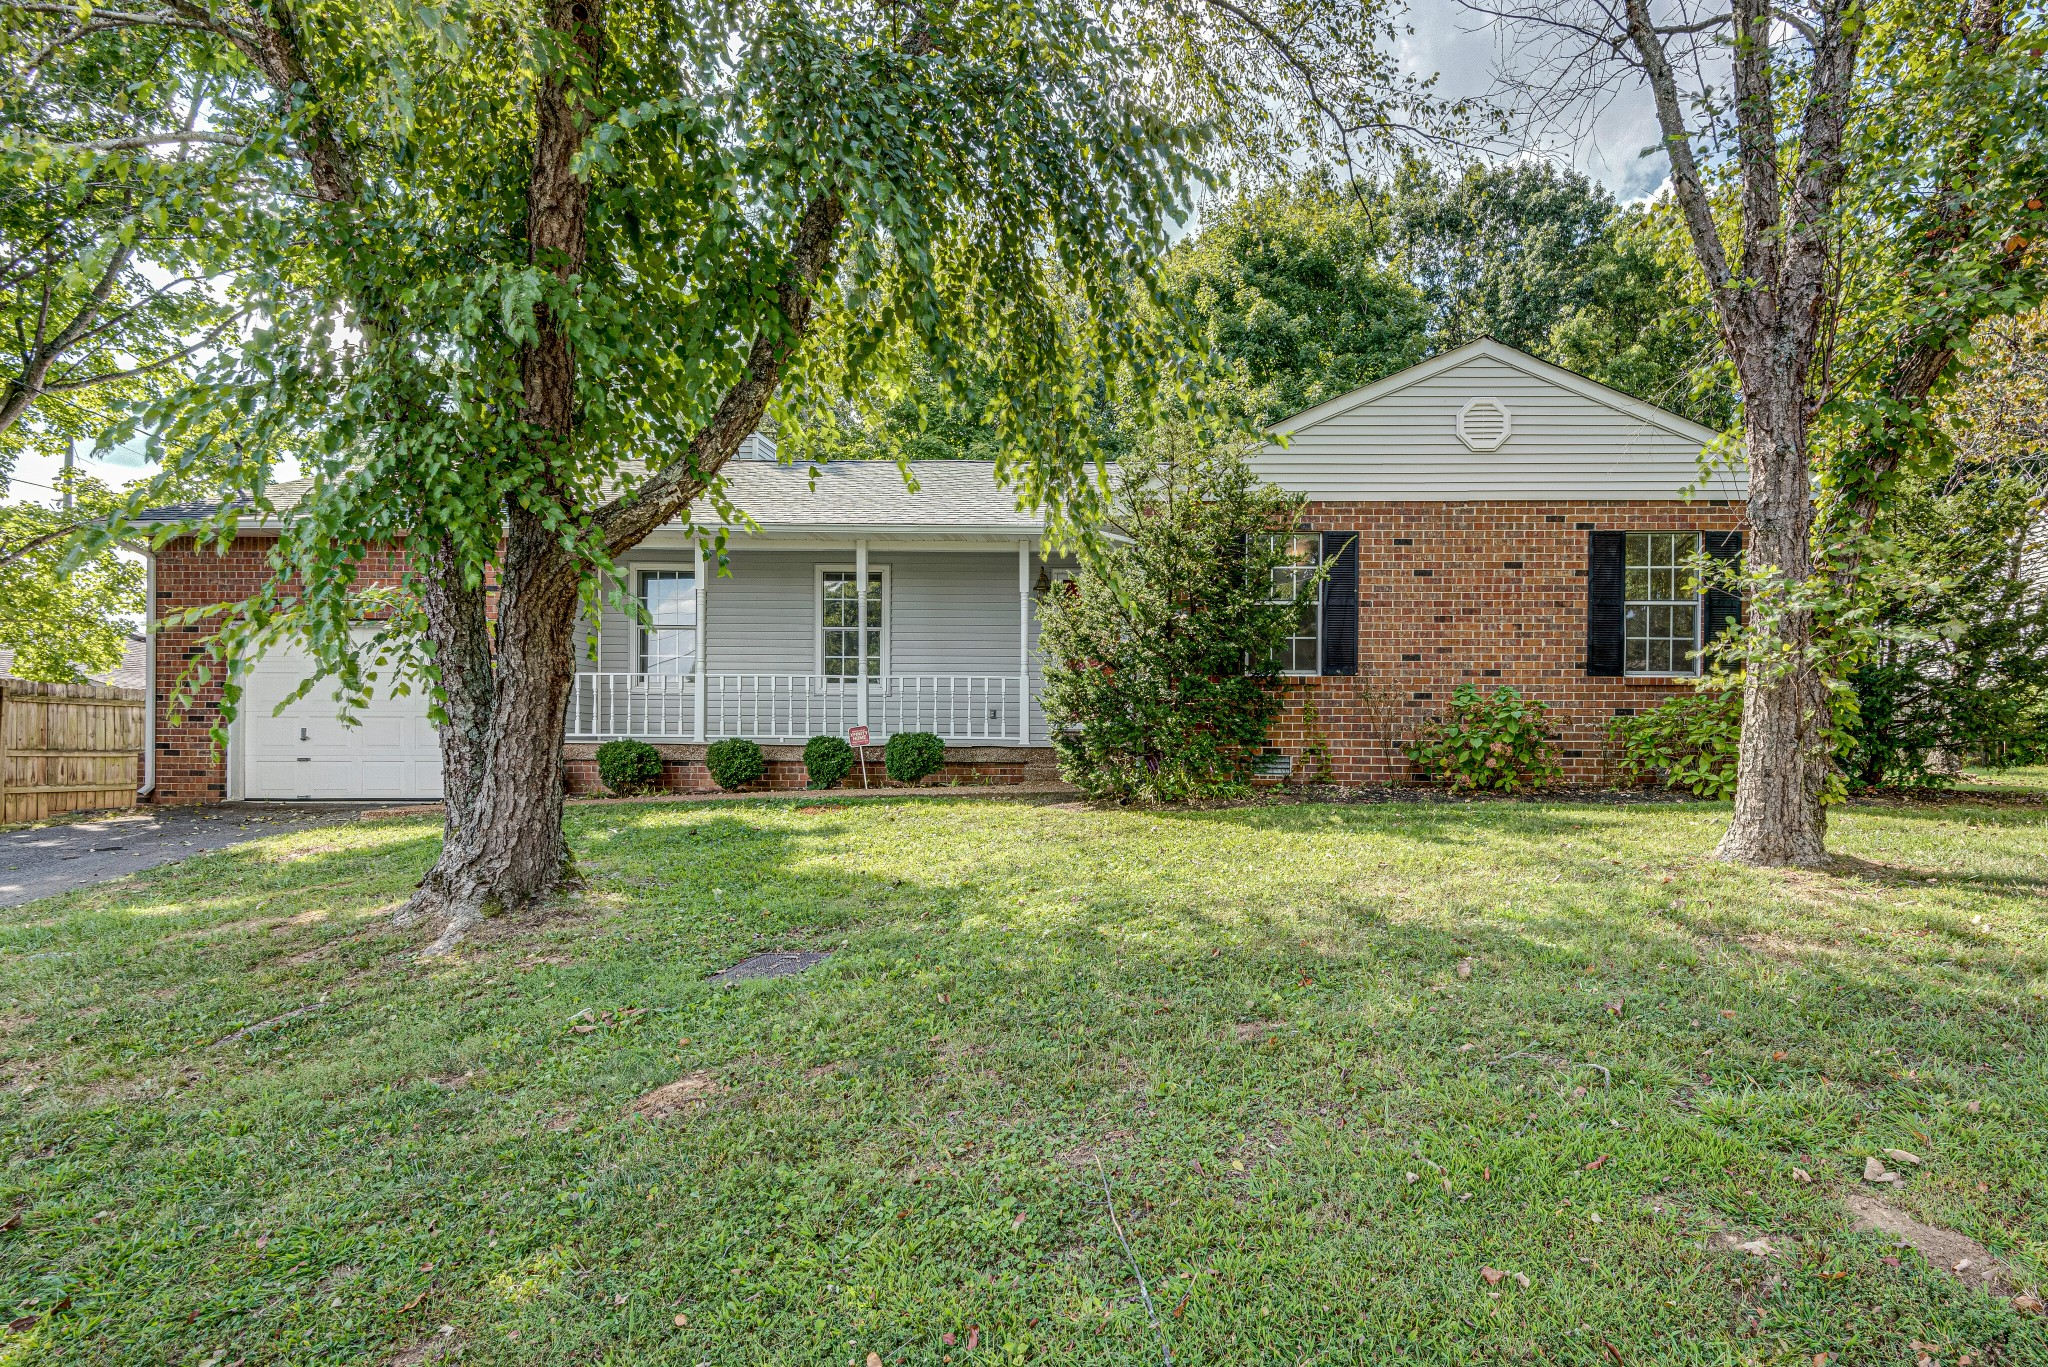 Welcome to this beautifully renovated ranch-style home situated on an oversized lot with mature trees. Just 20mins to Nashville, this home boast 3 beds, 2 baths, a fireplace with original brick surround, a large master suite with a walk-in closet, and gorgeous updates throughout. The hard work is done for you and ready to welcome its new family home.